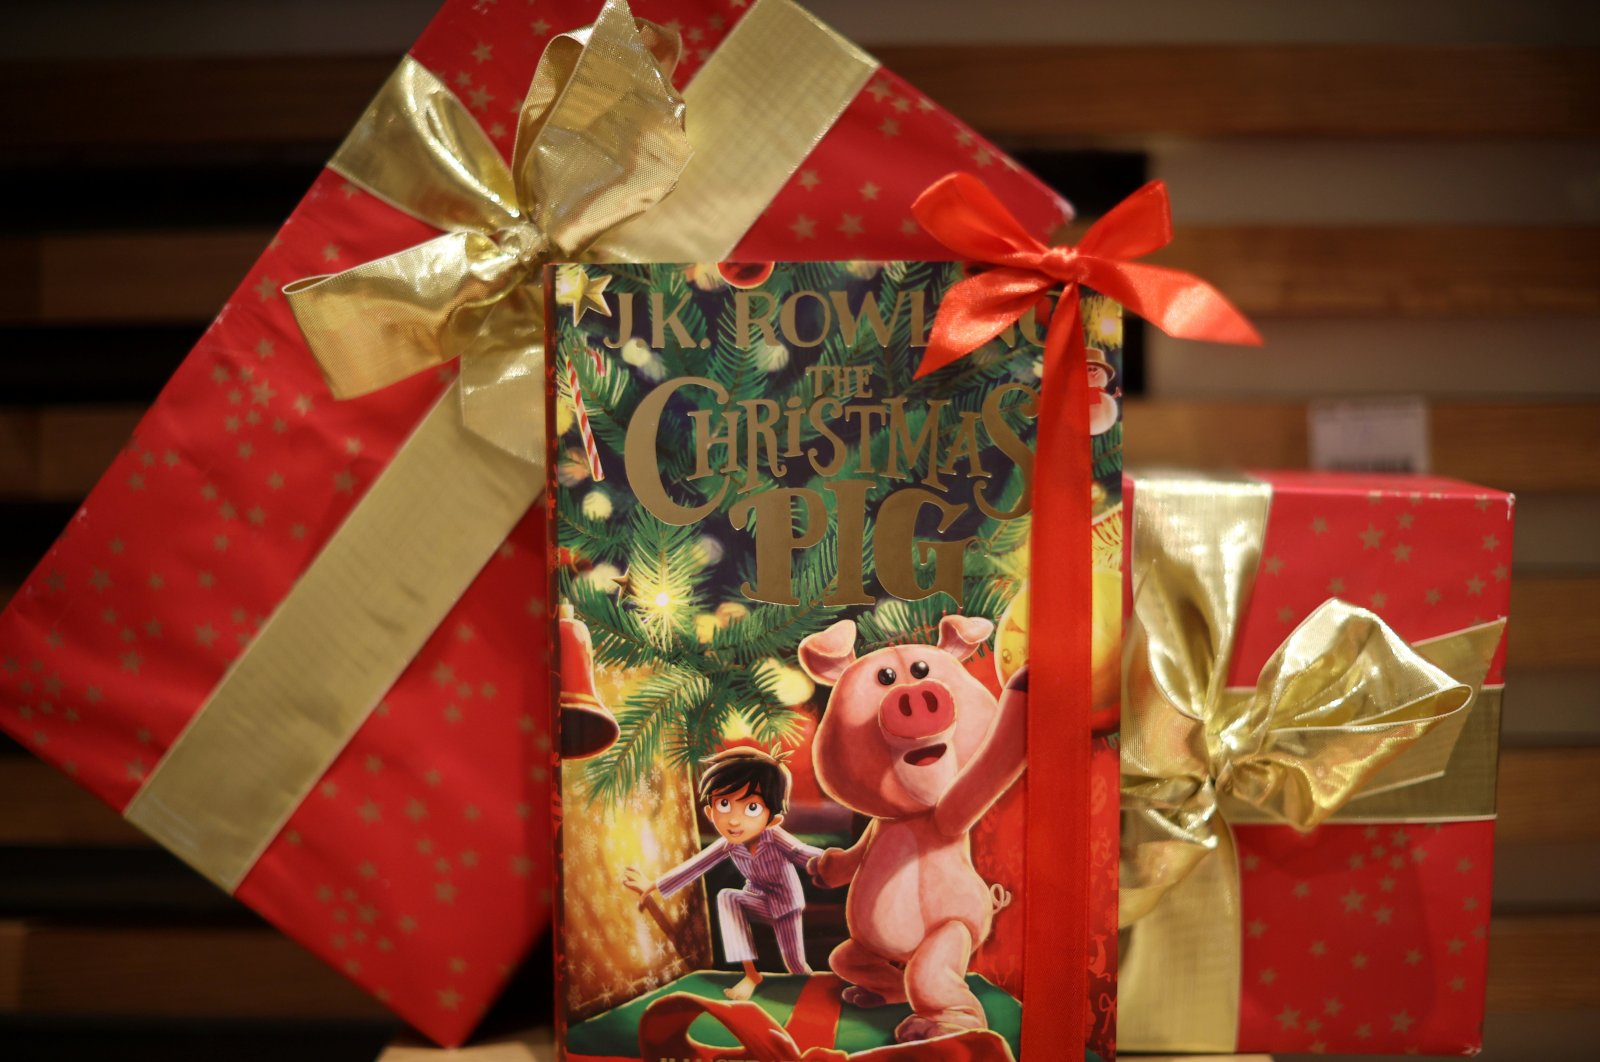 """A copy of """"The Christmas Pig,"""" a children's book written by J. K. Rowling, is displayed at a Waterstones store in London, England, Oct. 12, 2021. (REUTERS Photo)"""